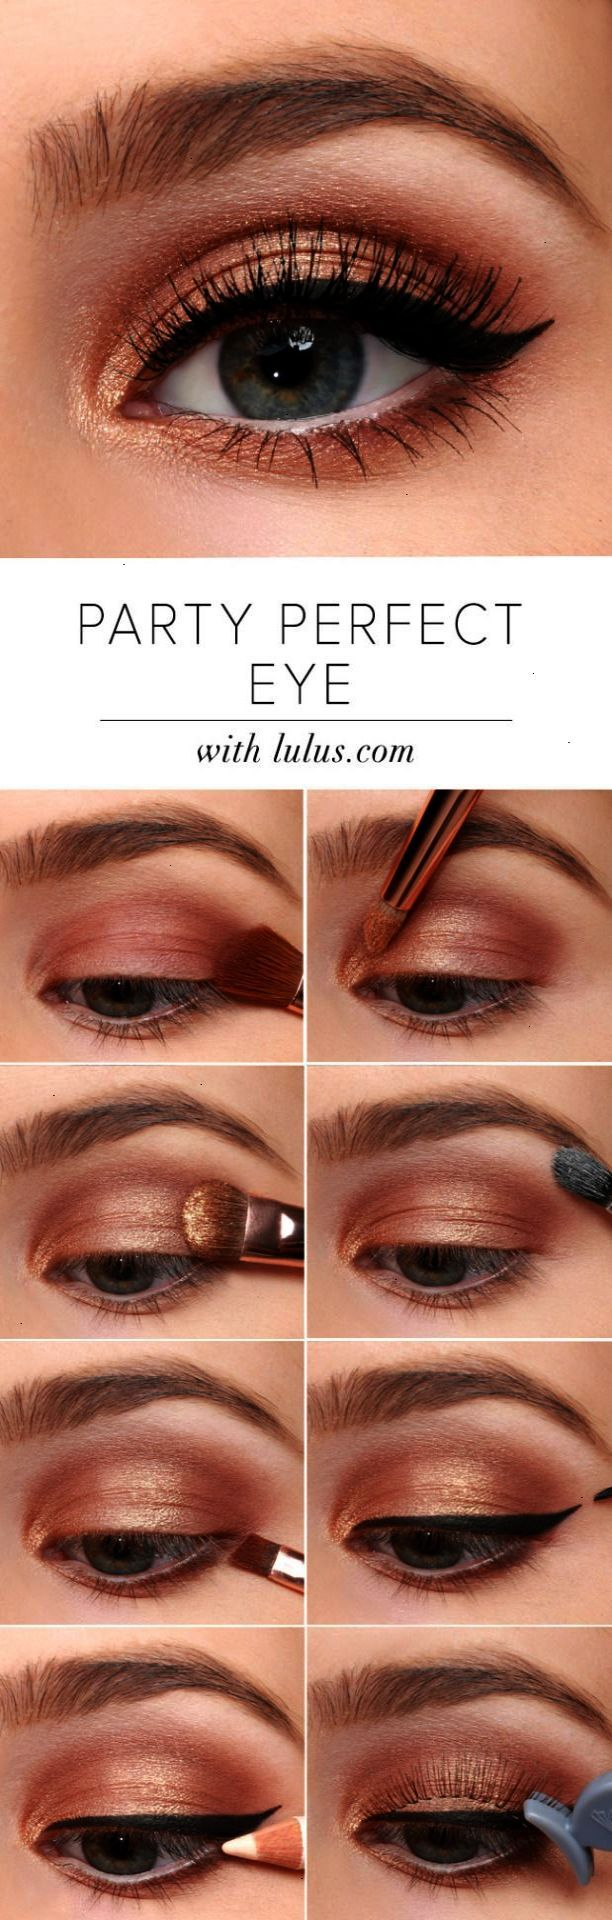 Howto party perfect eye makeup tutorial makeup pinterest